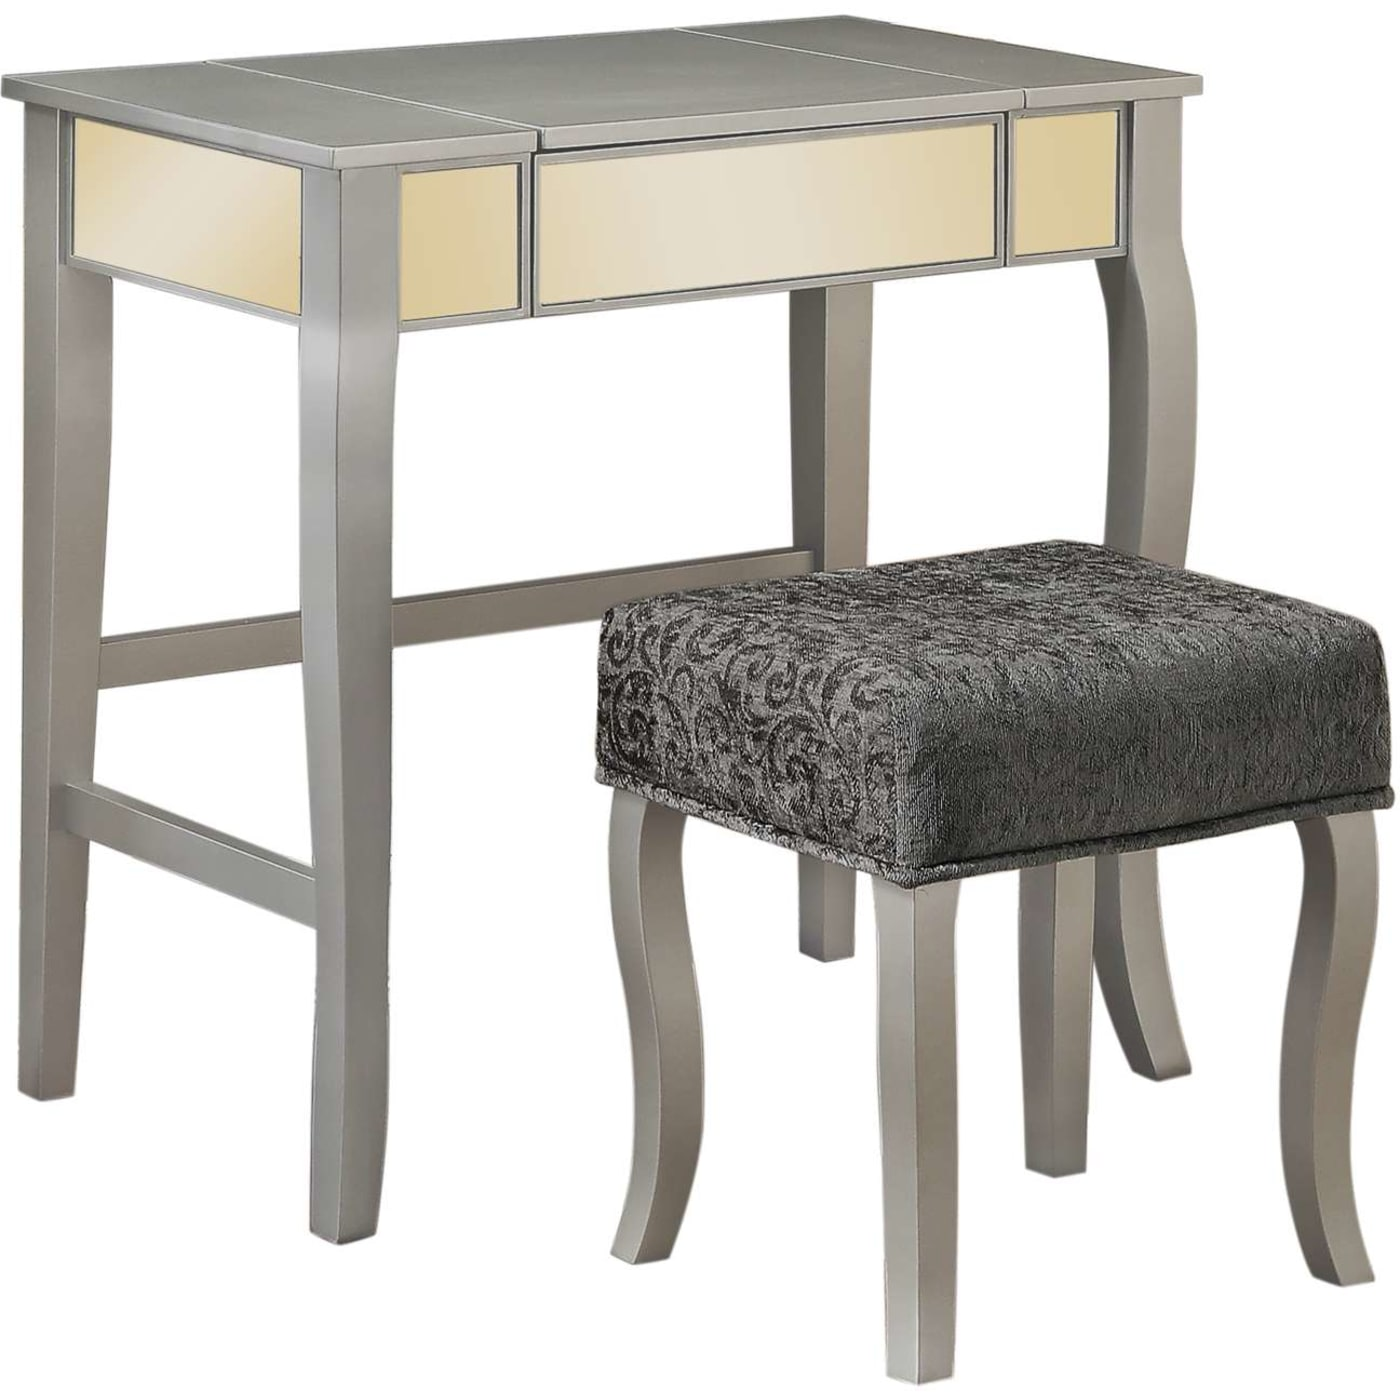 Linon Home Decor Products Inc. Harper Pewter Gray Vanity